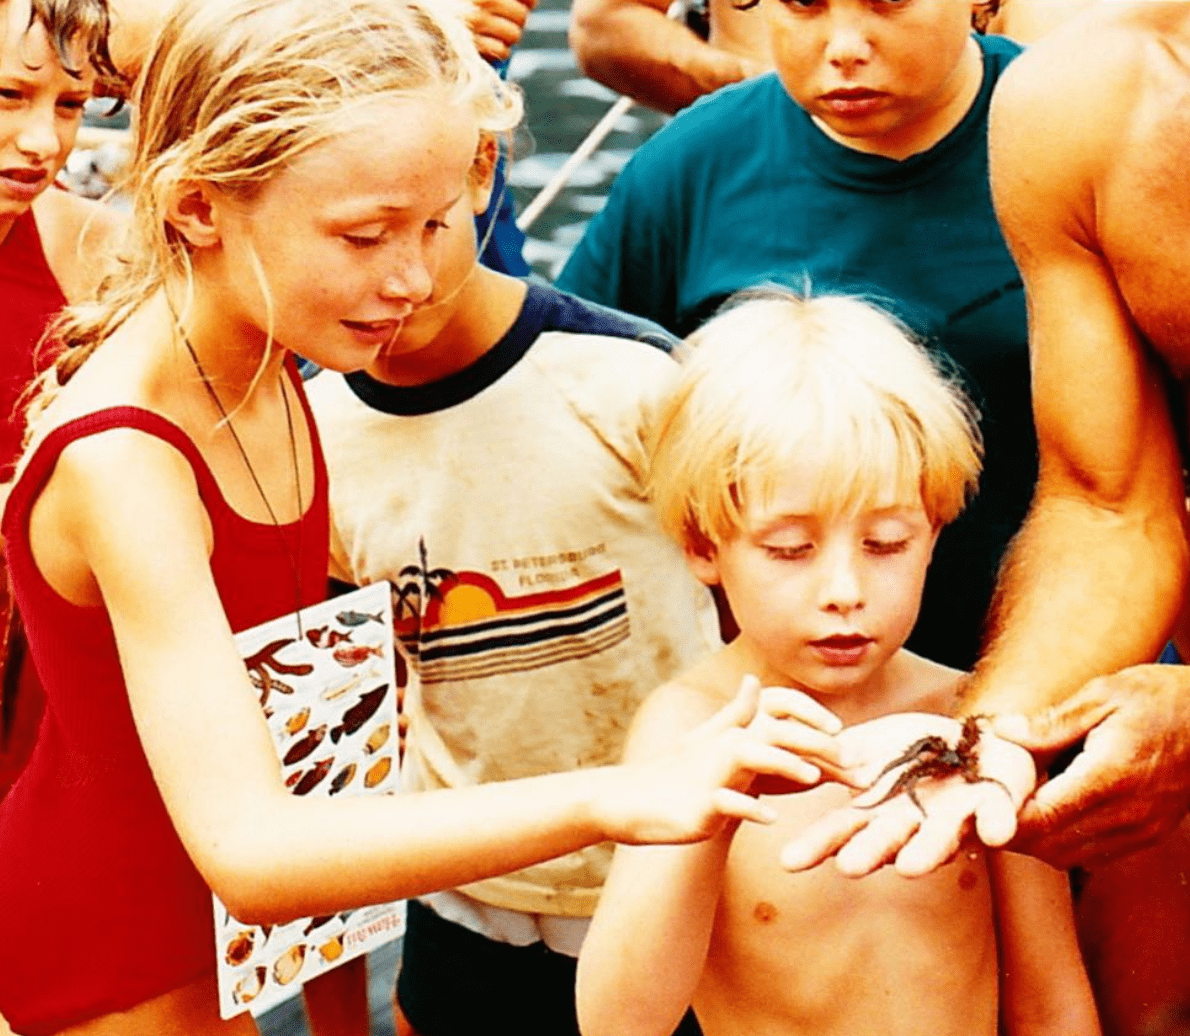 My brother @pcousteau and I were always front and center when it was time to touch the sea creatures. I had my fish guide close at hand (i.e. around my neck) for ease of reference but I knew them all by heart. Some of the kids called me nerdy but that's just another word for passionate. 😉